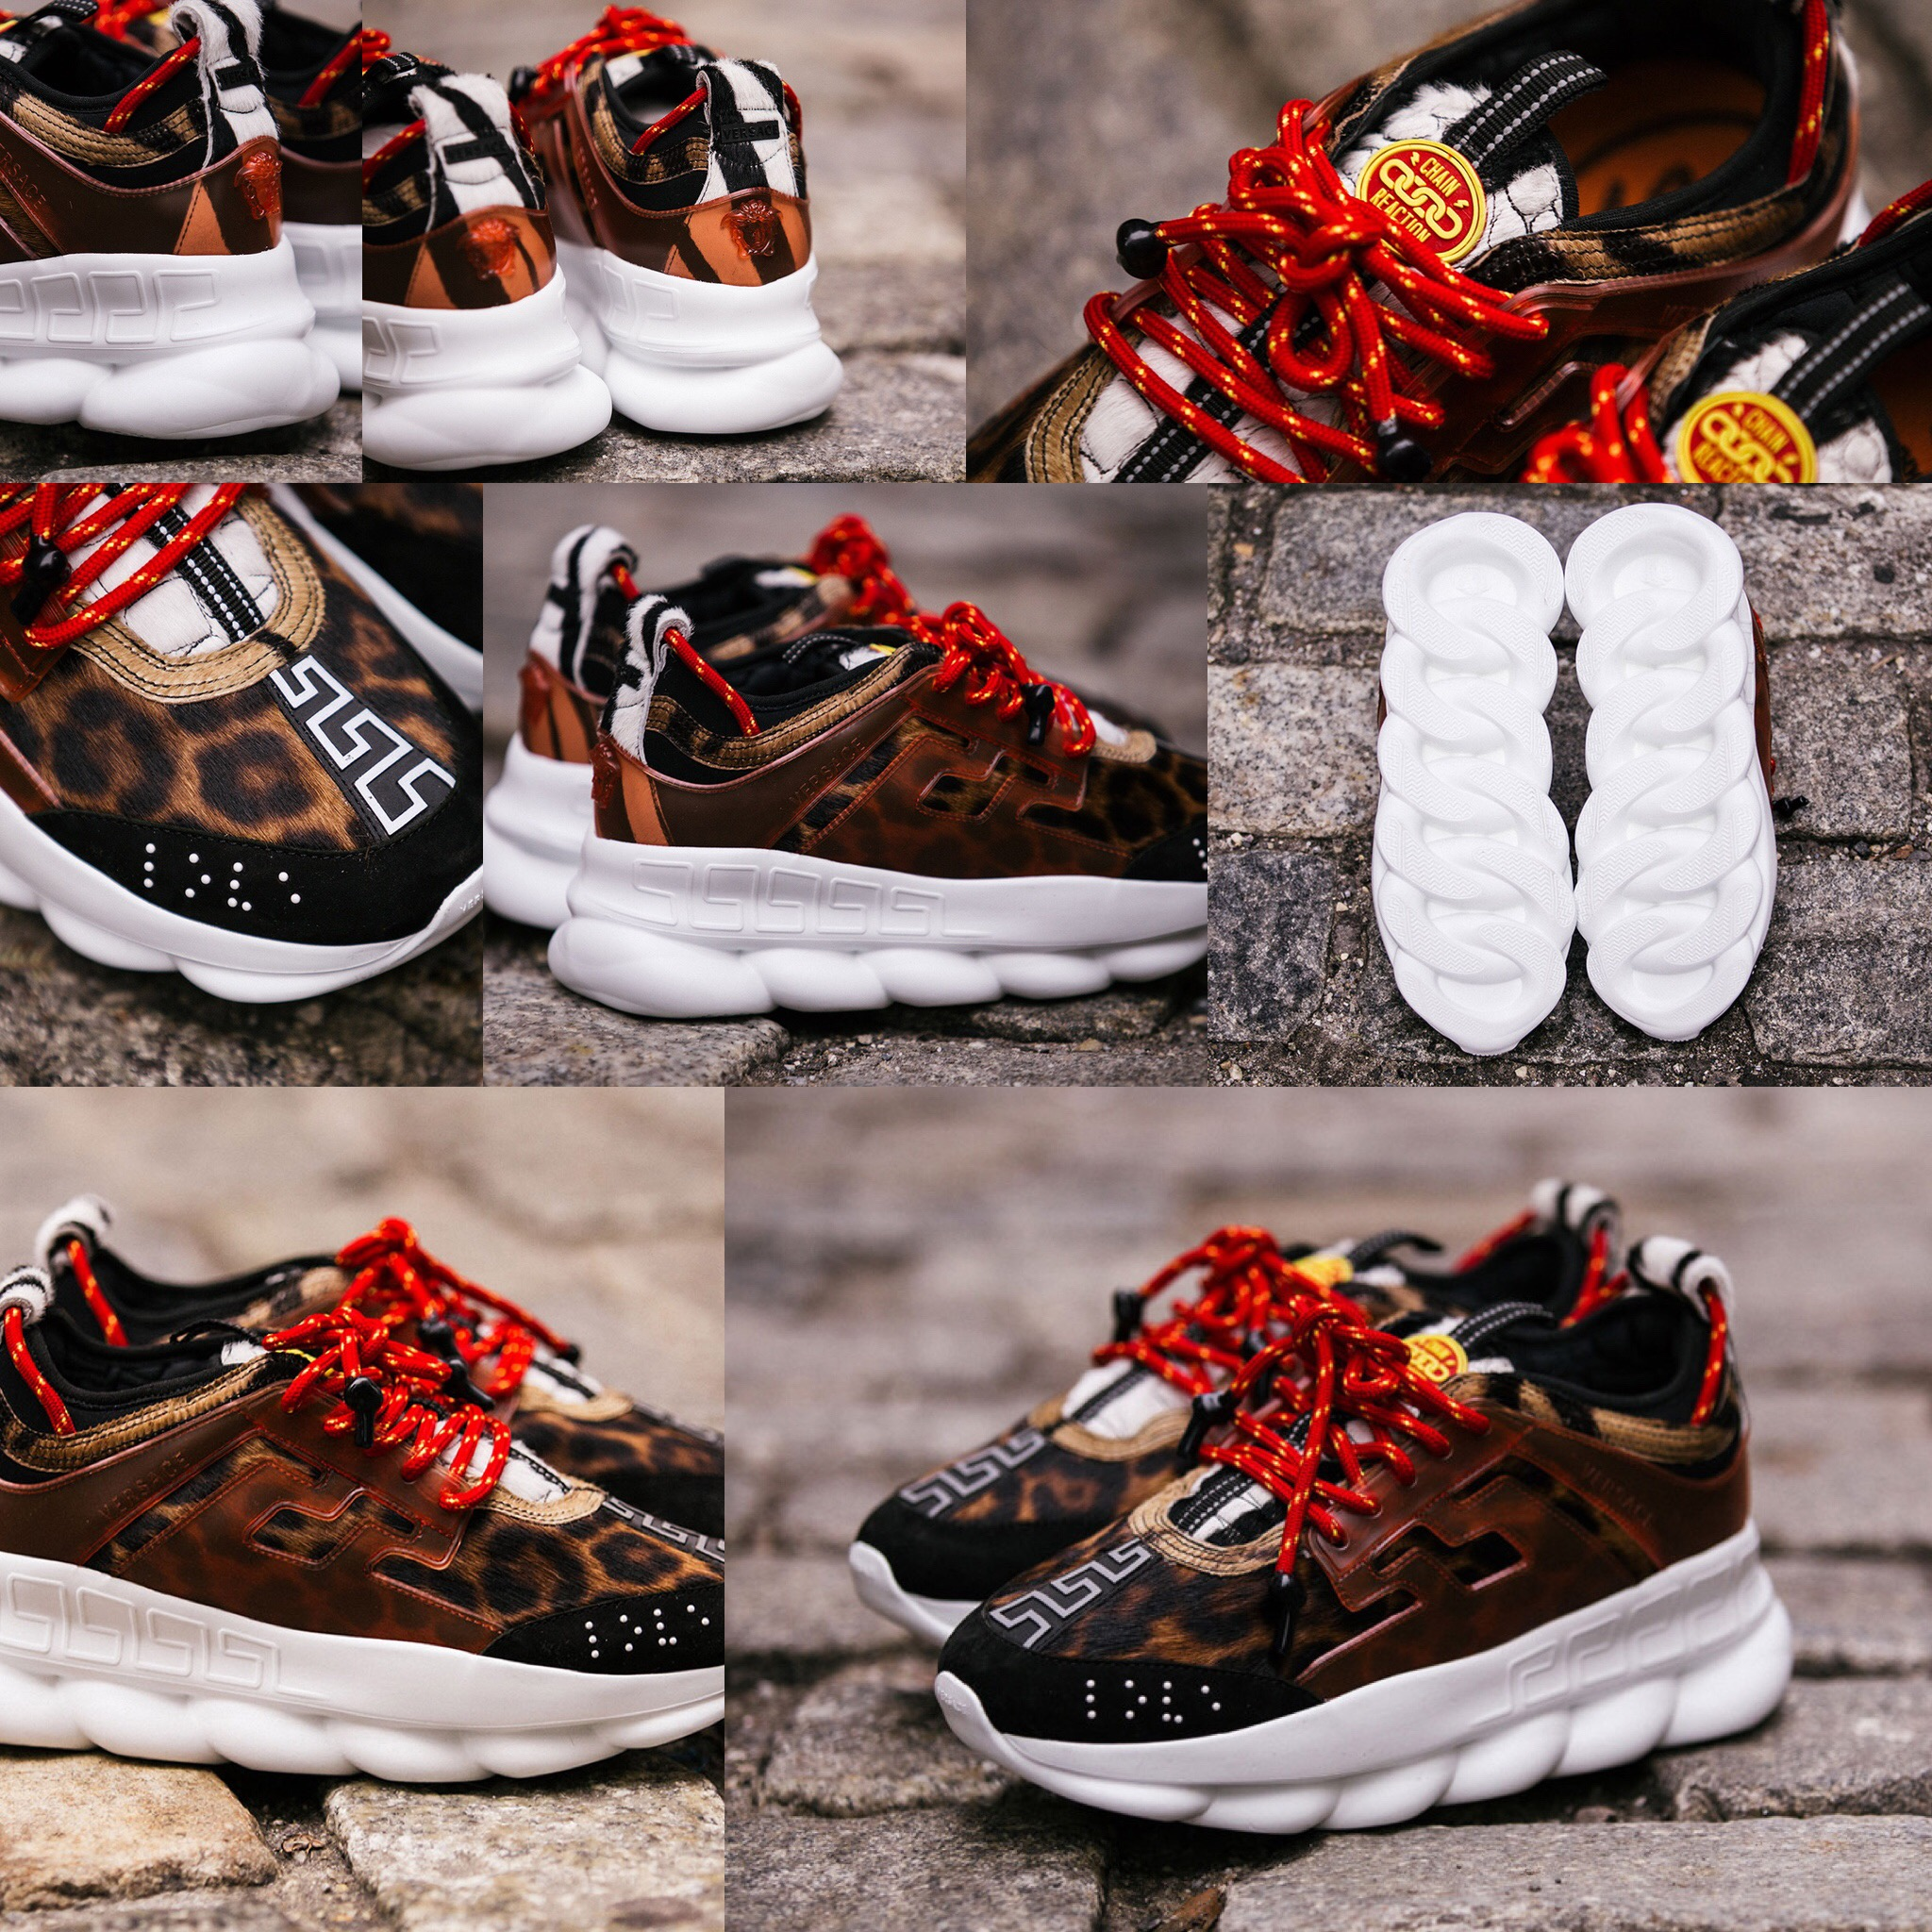 """a783b022e7af7 Look At The 2Chainz x Versace """"Chain Reaction"""" Shoe"""